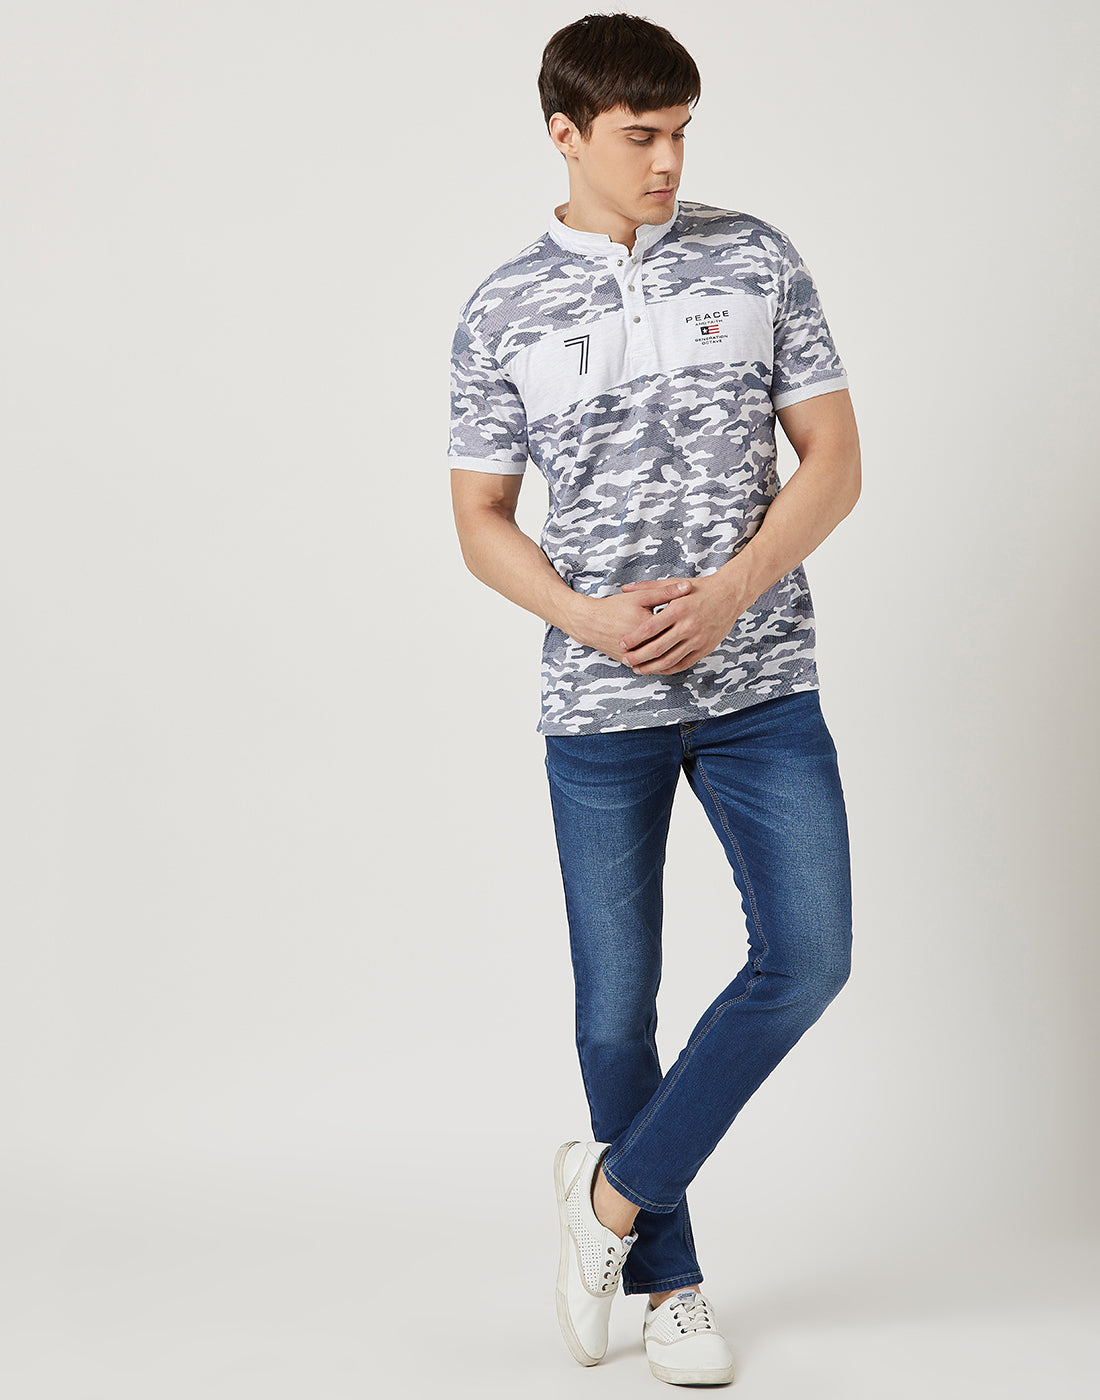 Octave Men White Camouflage T-shirt